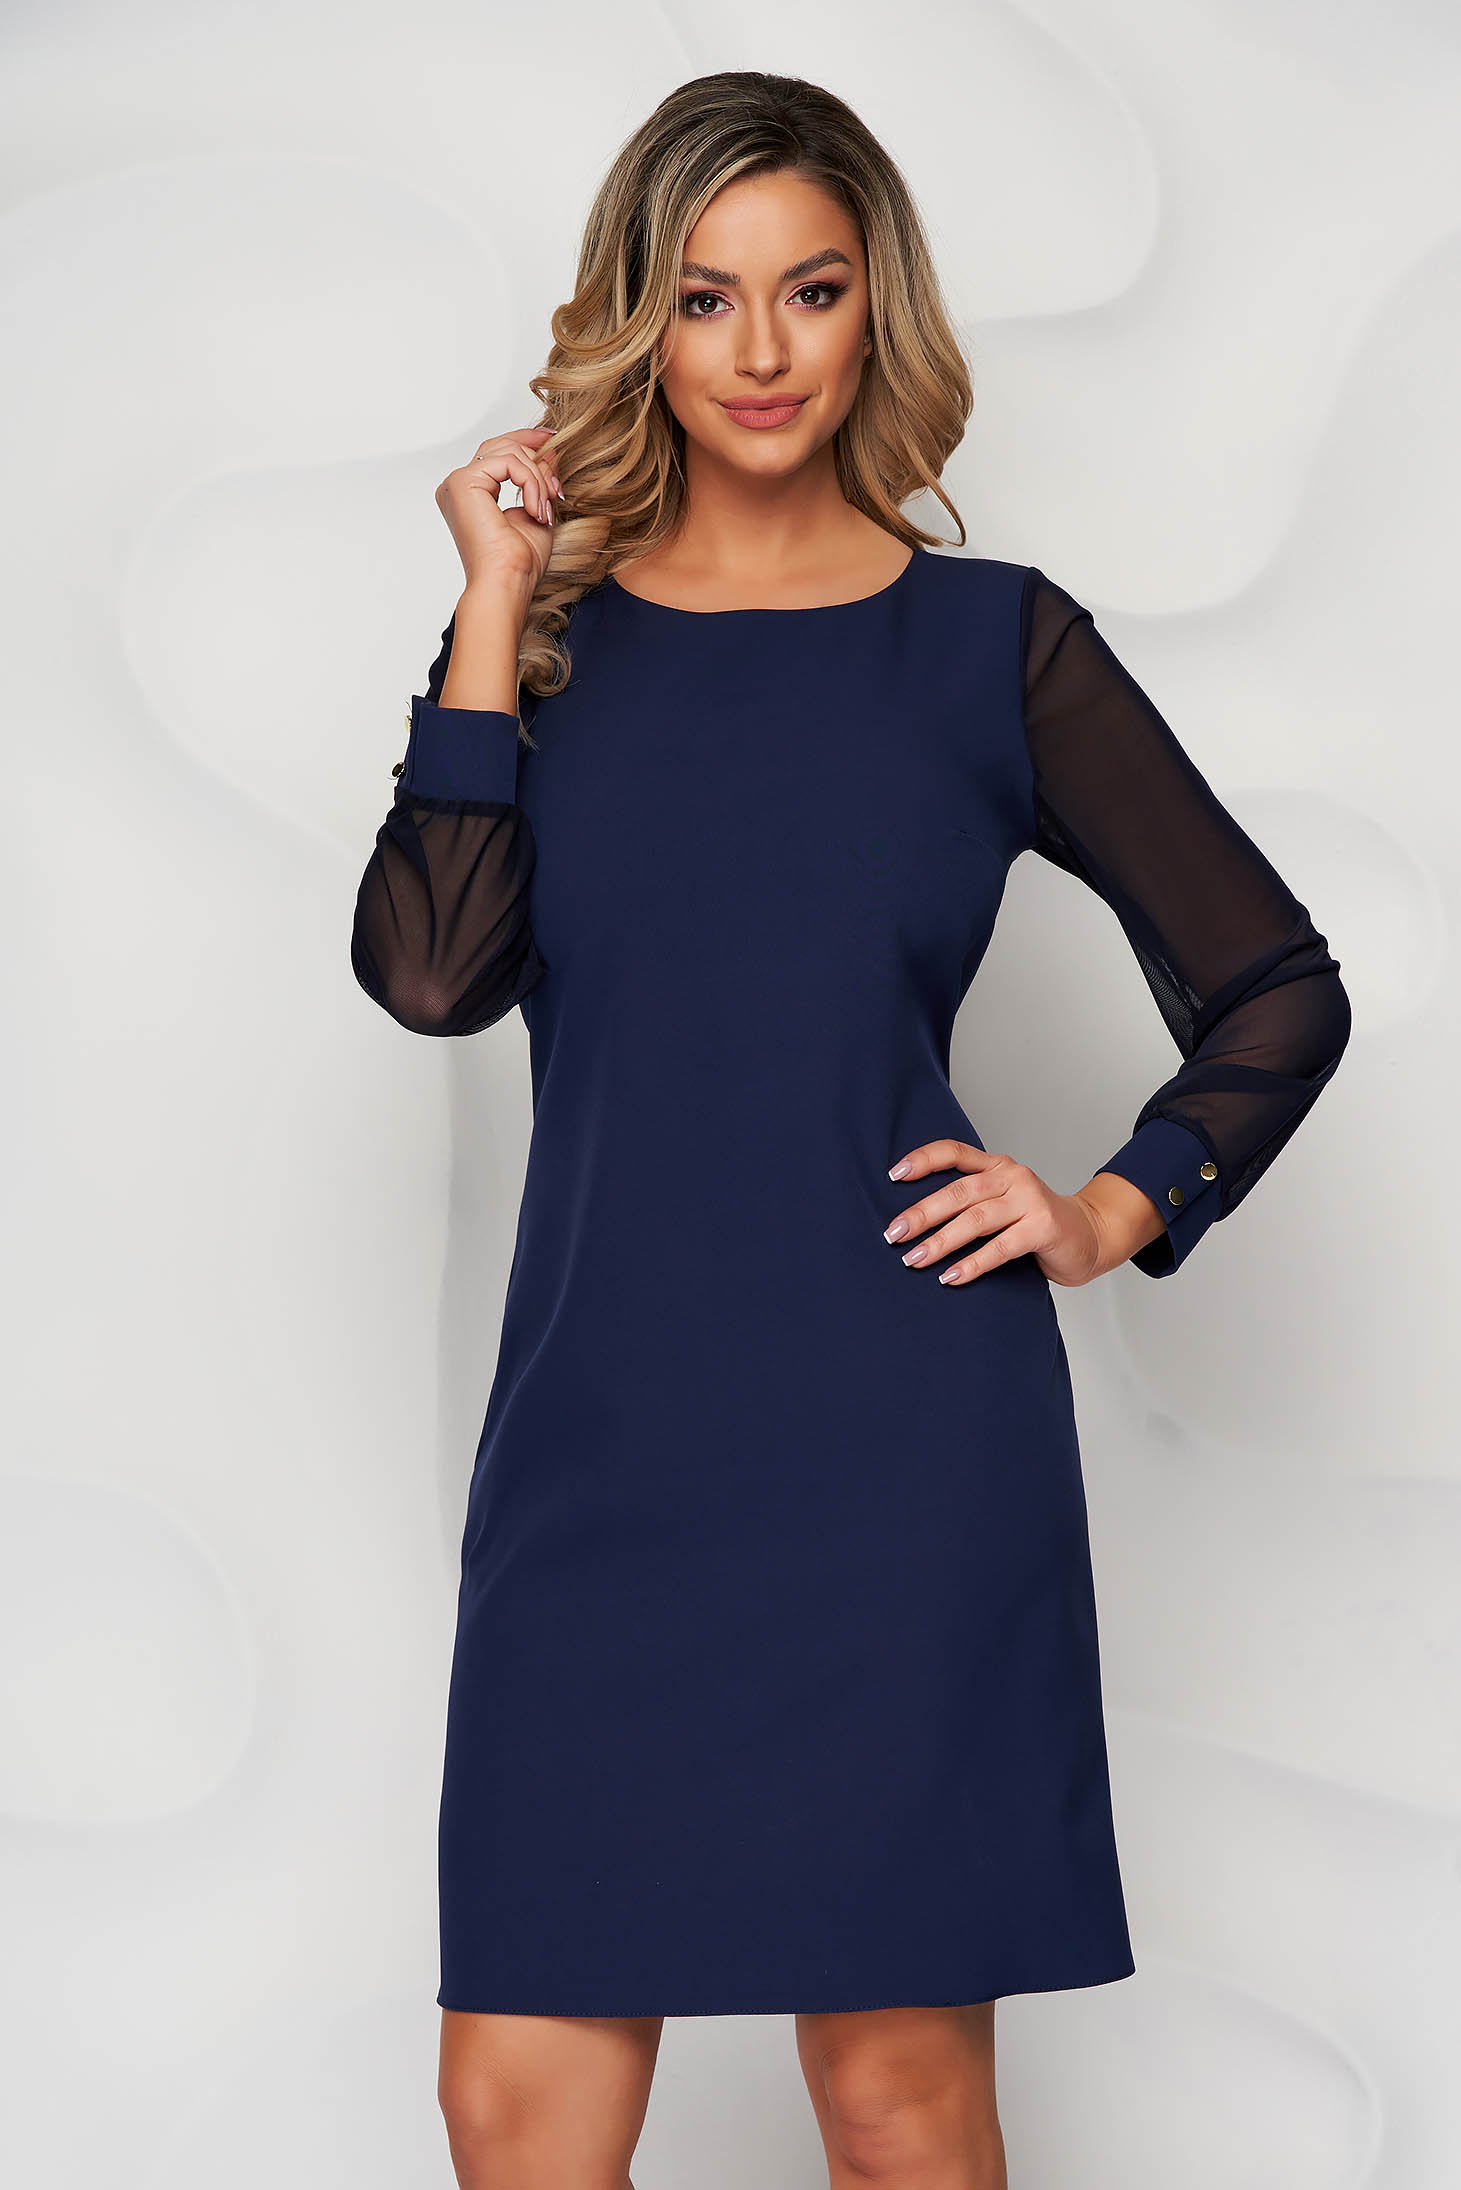 Darkblue dress transparent sleeves with puffed sleeves straight from elastic fabric